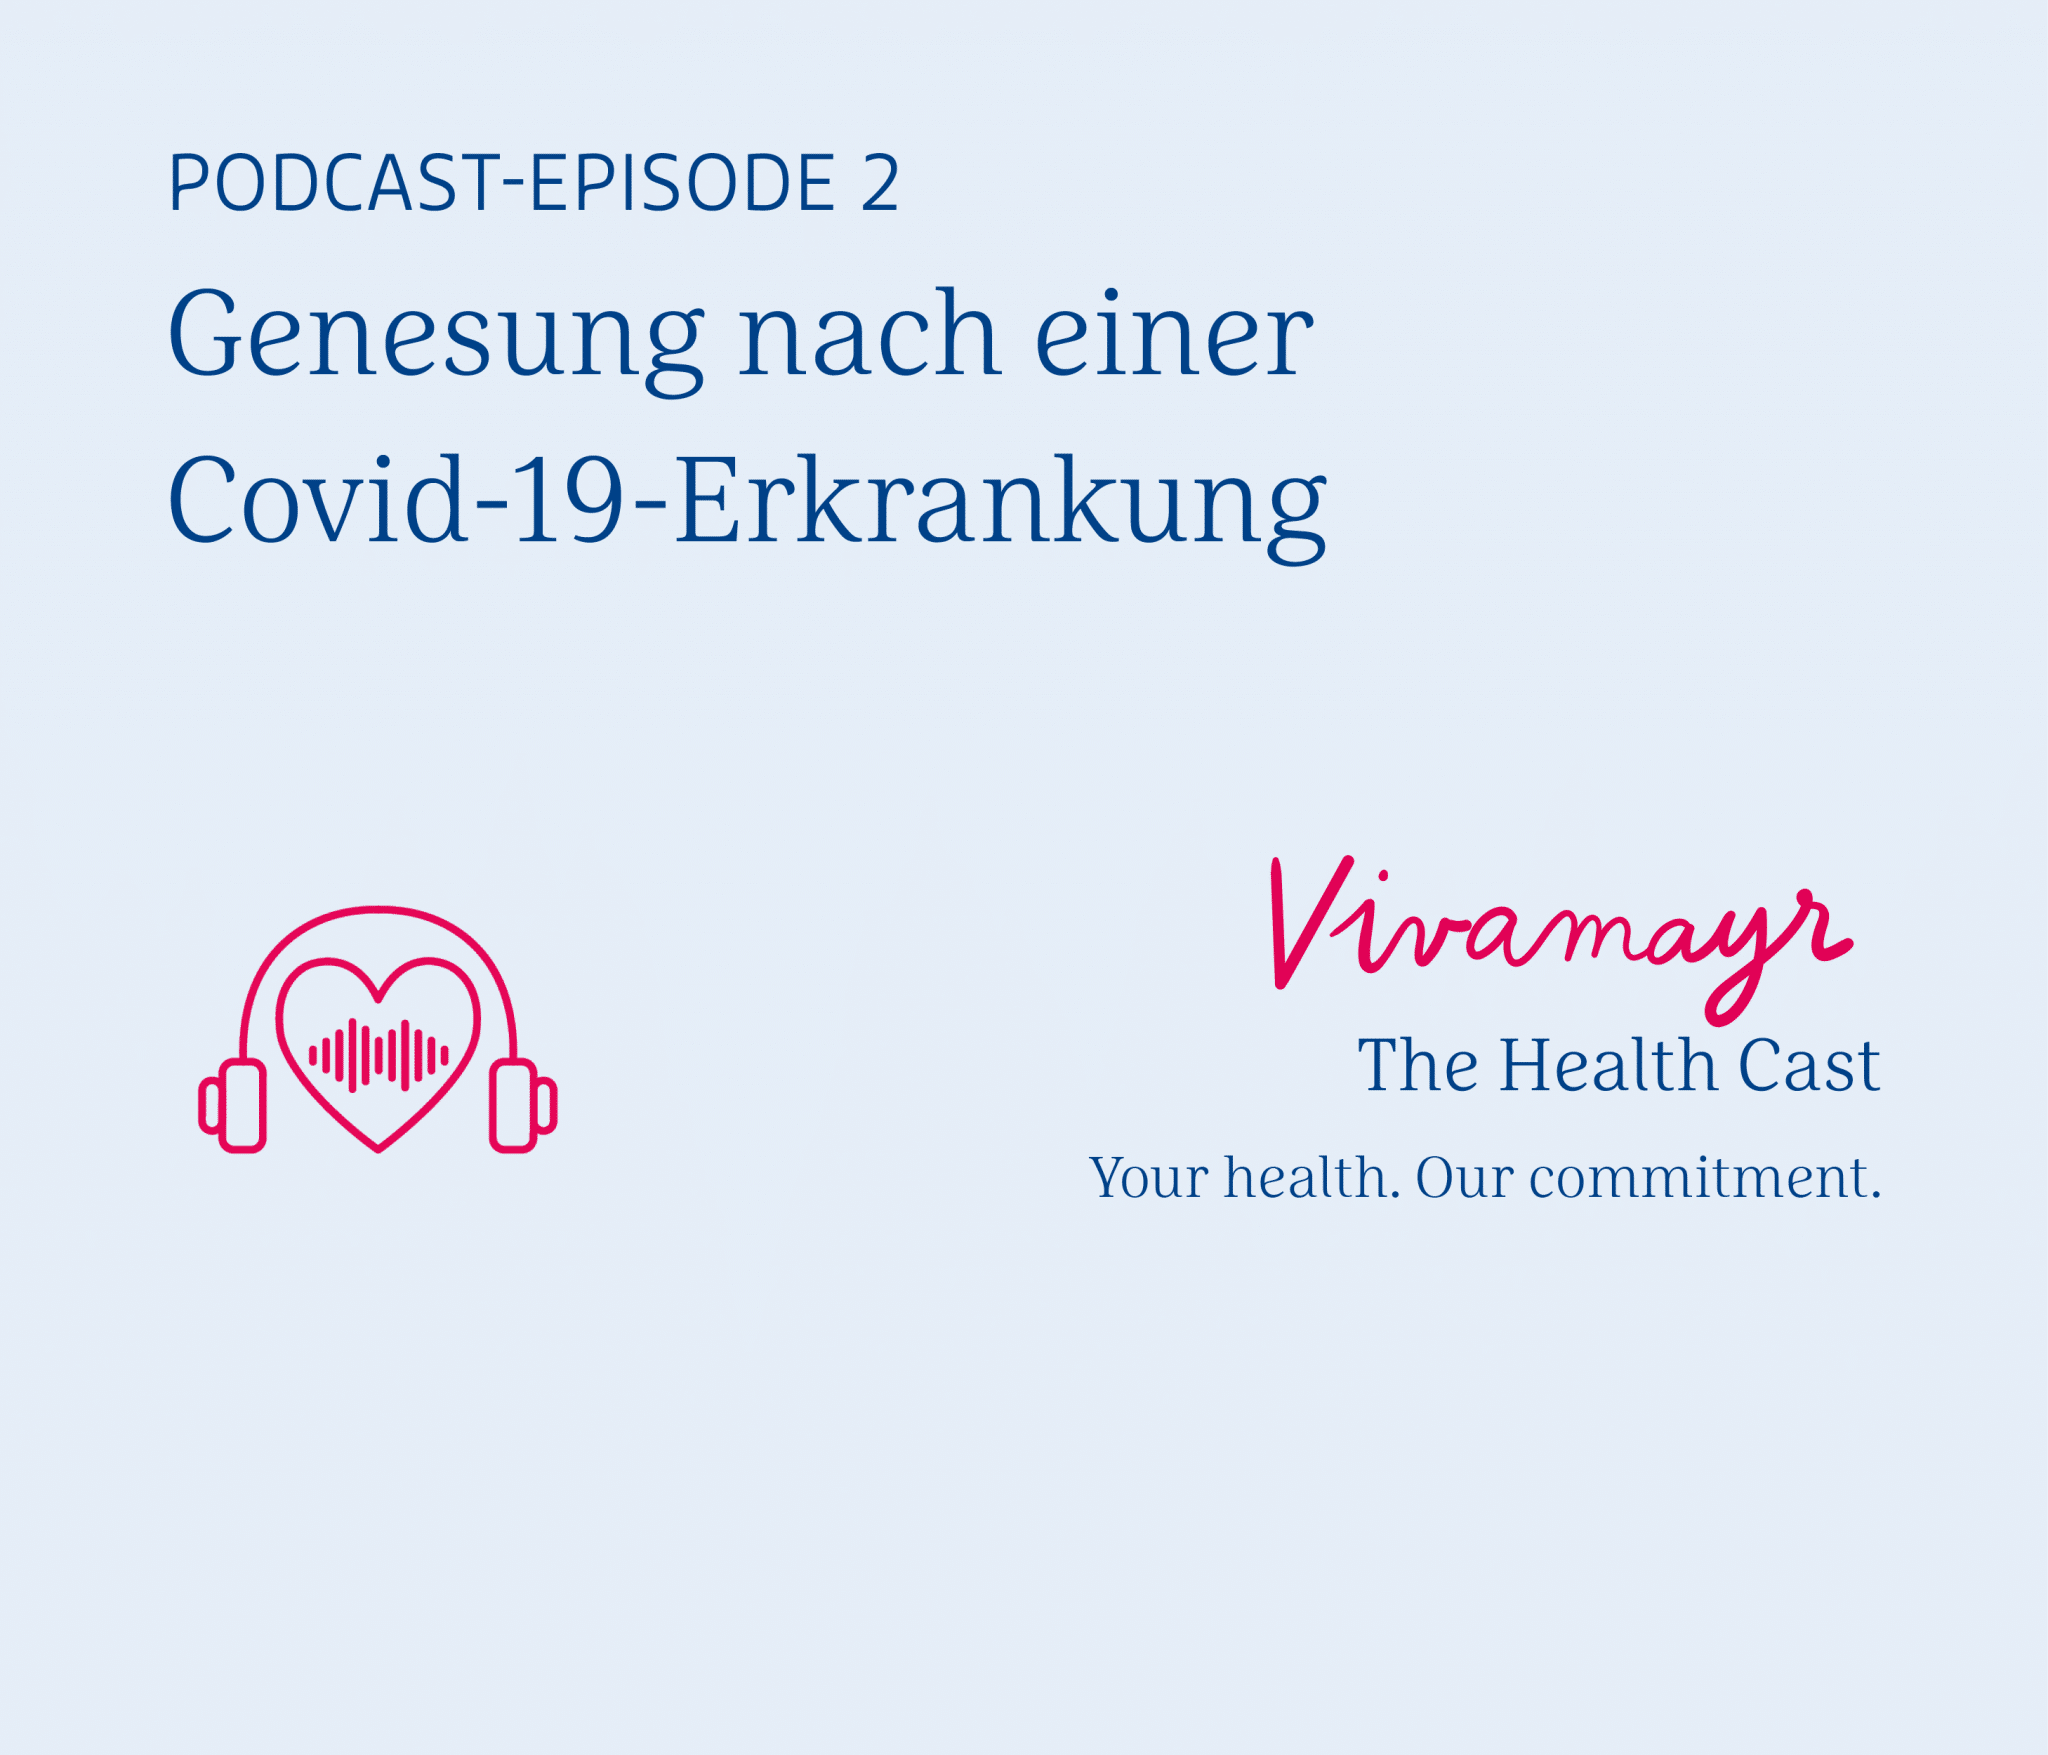 VIVAMAYR Health Cast Episode 2